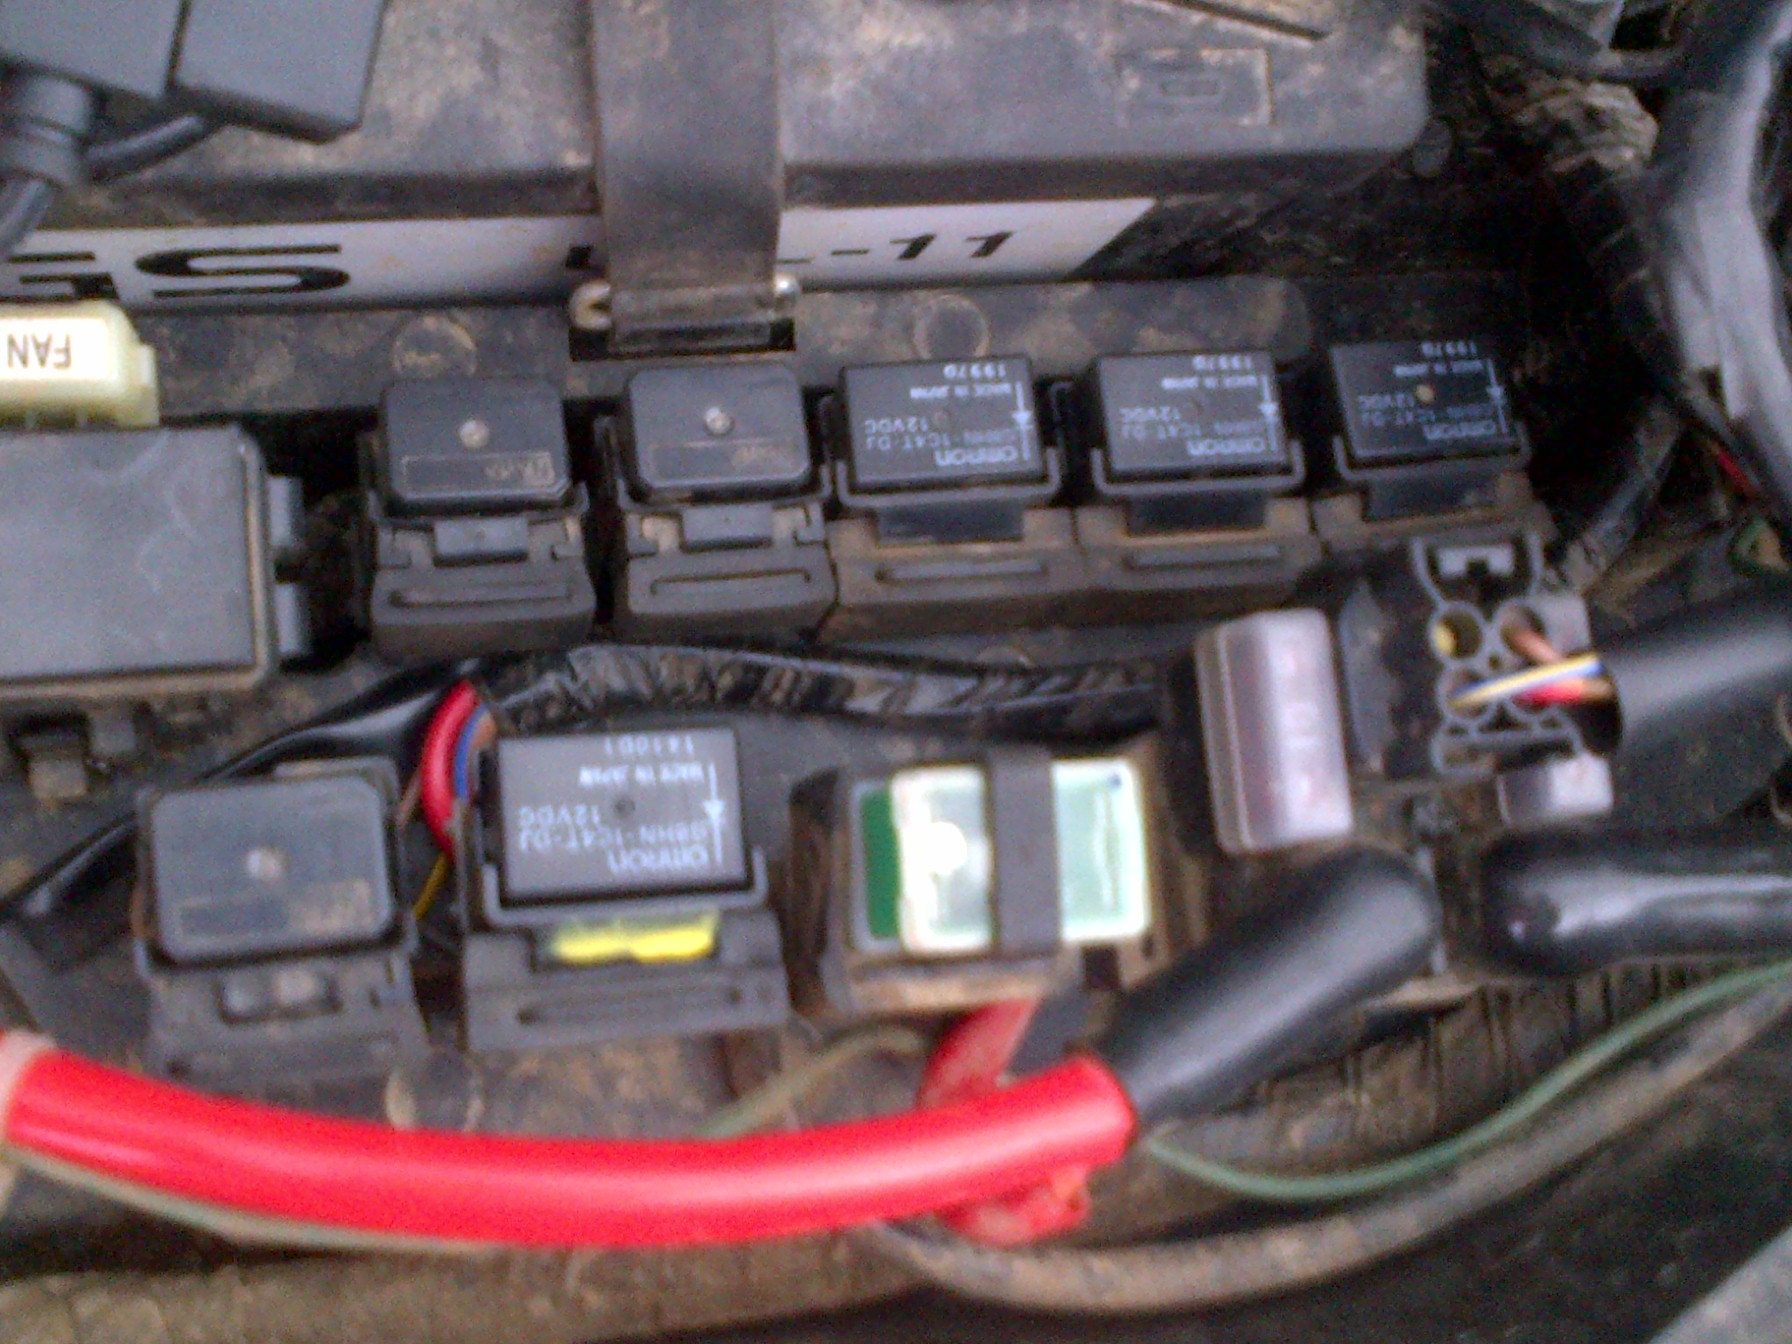 2013 02 27_225531_rhino fusibles de_face i have a yamaha rhino 2008 700fi i experienced a lot of problem arctic cat prowler 700 fuse box diagram at gsmportal.co